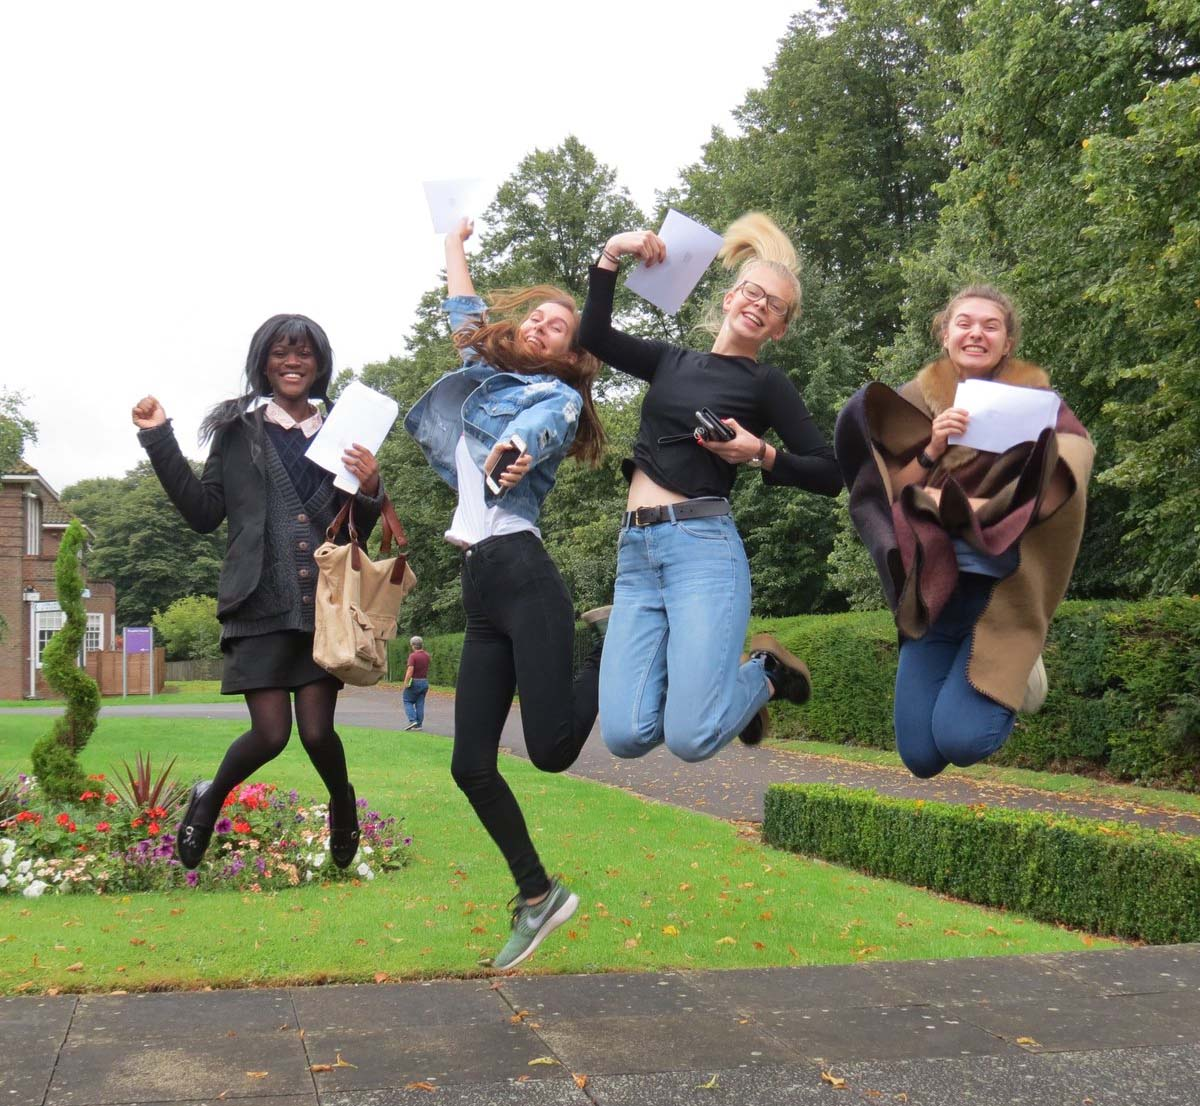 On the 17 Aug 2017, Almost half of Yr 13 RMS A Level grades at A*/A grade